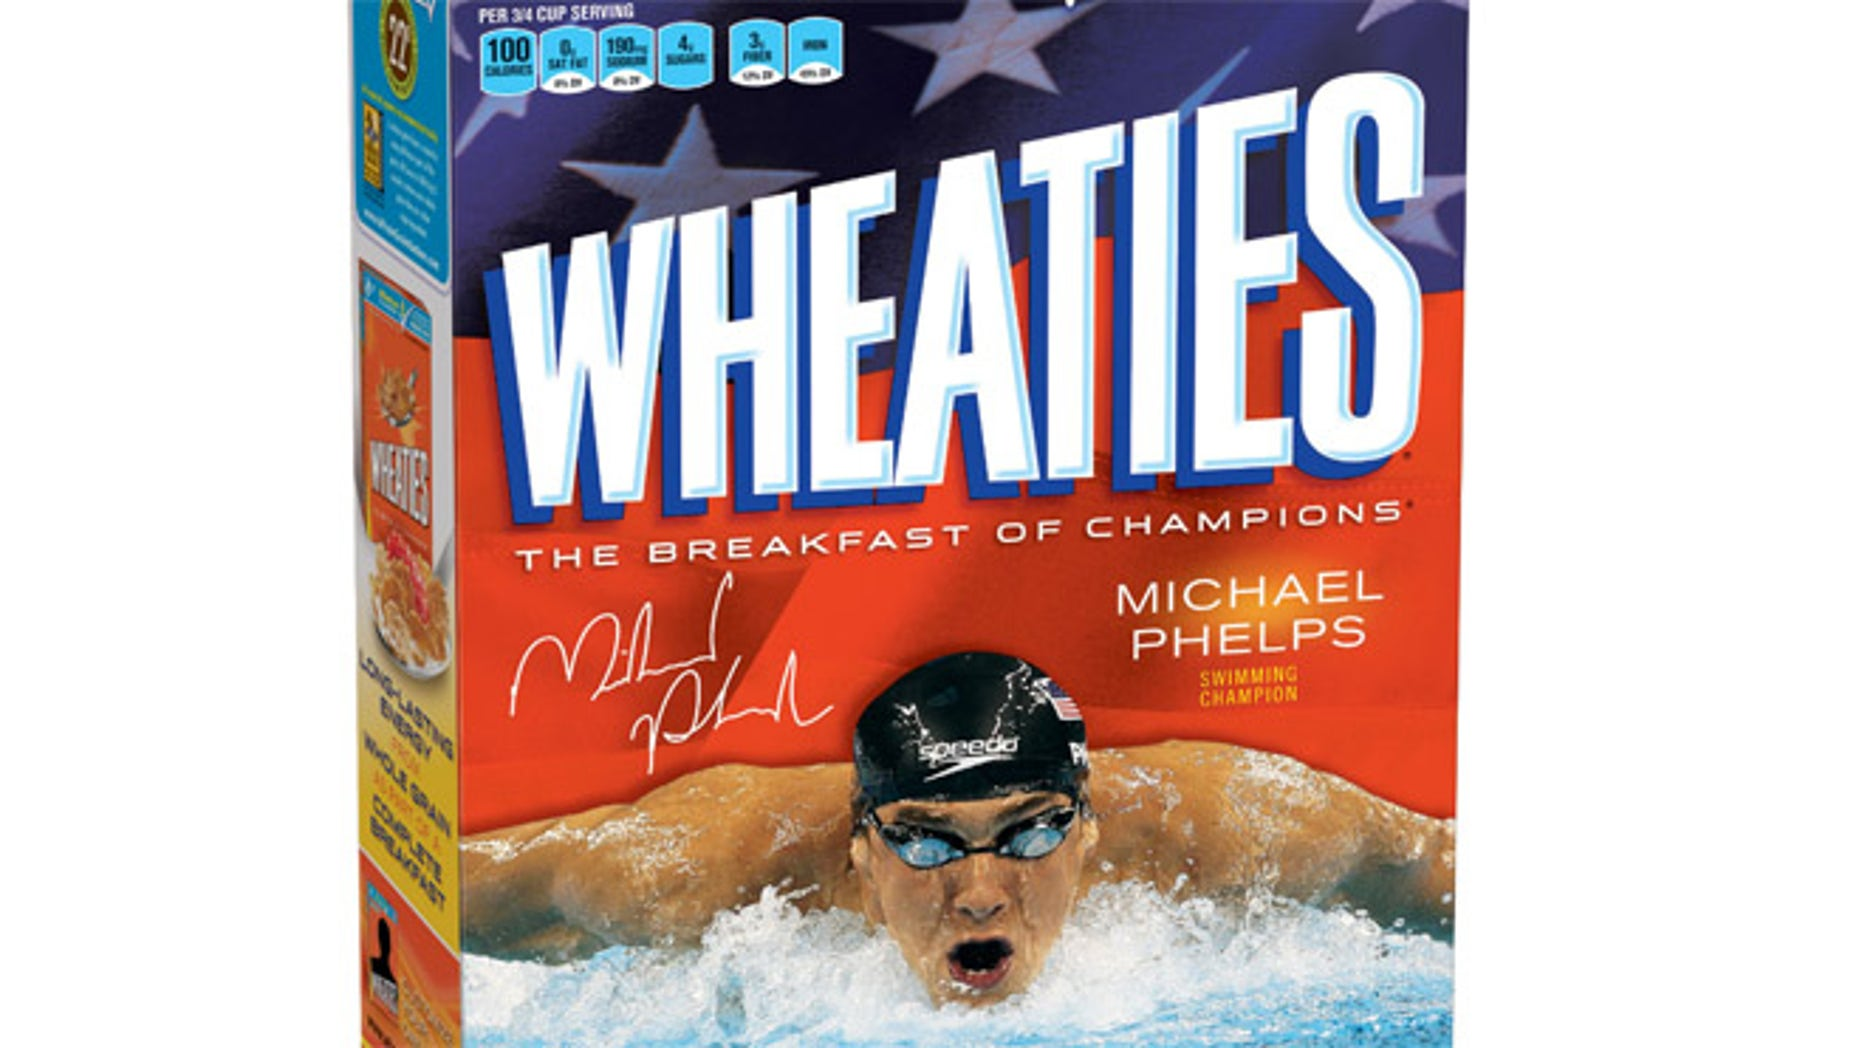 Aug. 16. 2012: This image provided by General Mills shows a limited-edition box of Wheaties featuring Michael Phelps.